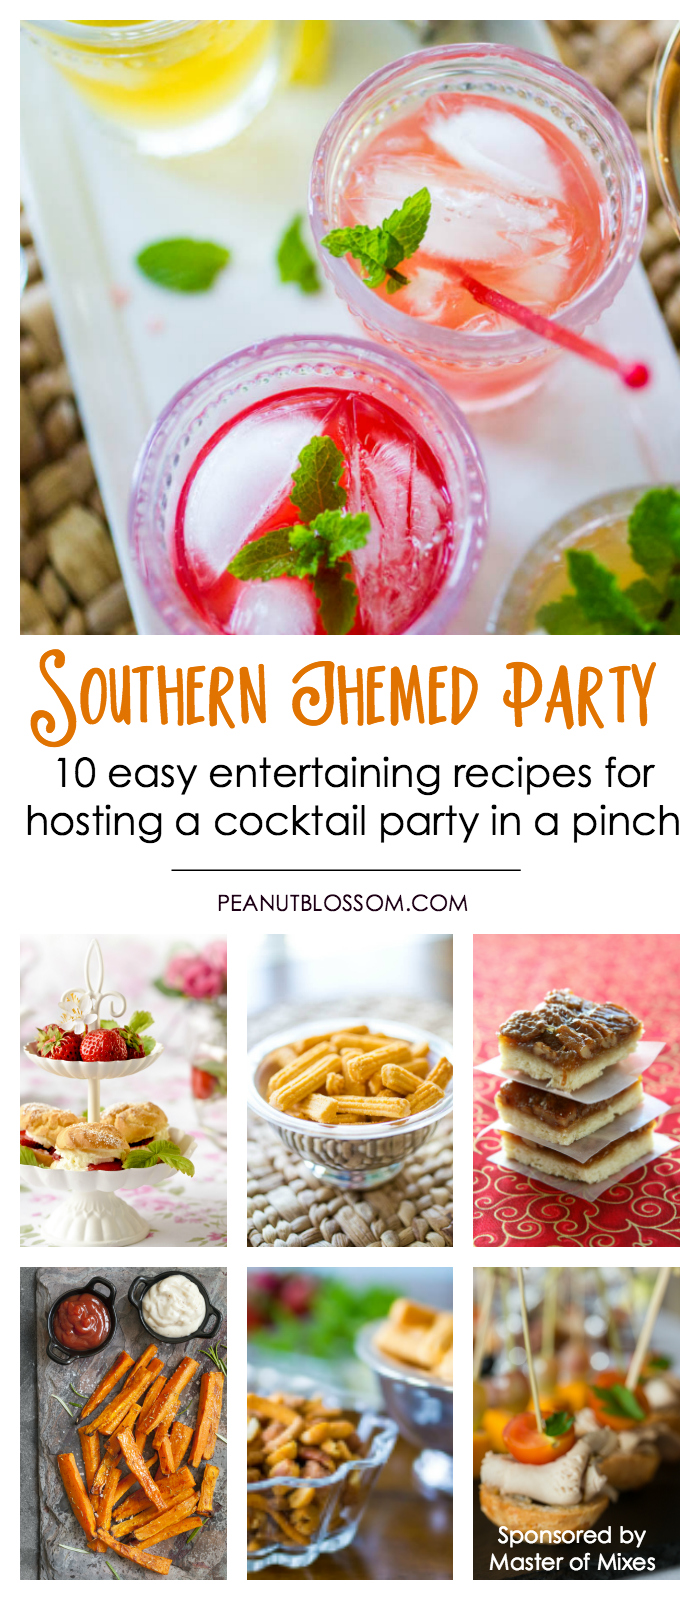 10 hostess hacks for the easiest Kentucky Derby Party ever